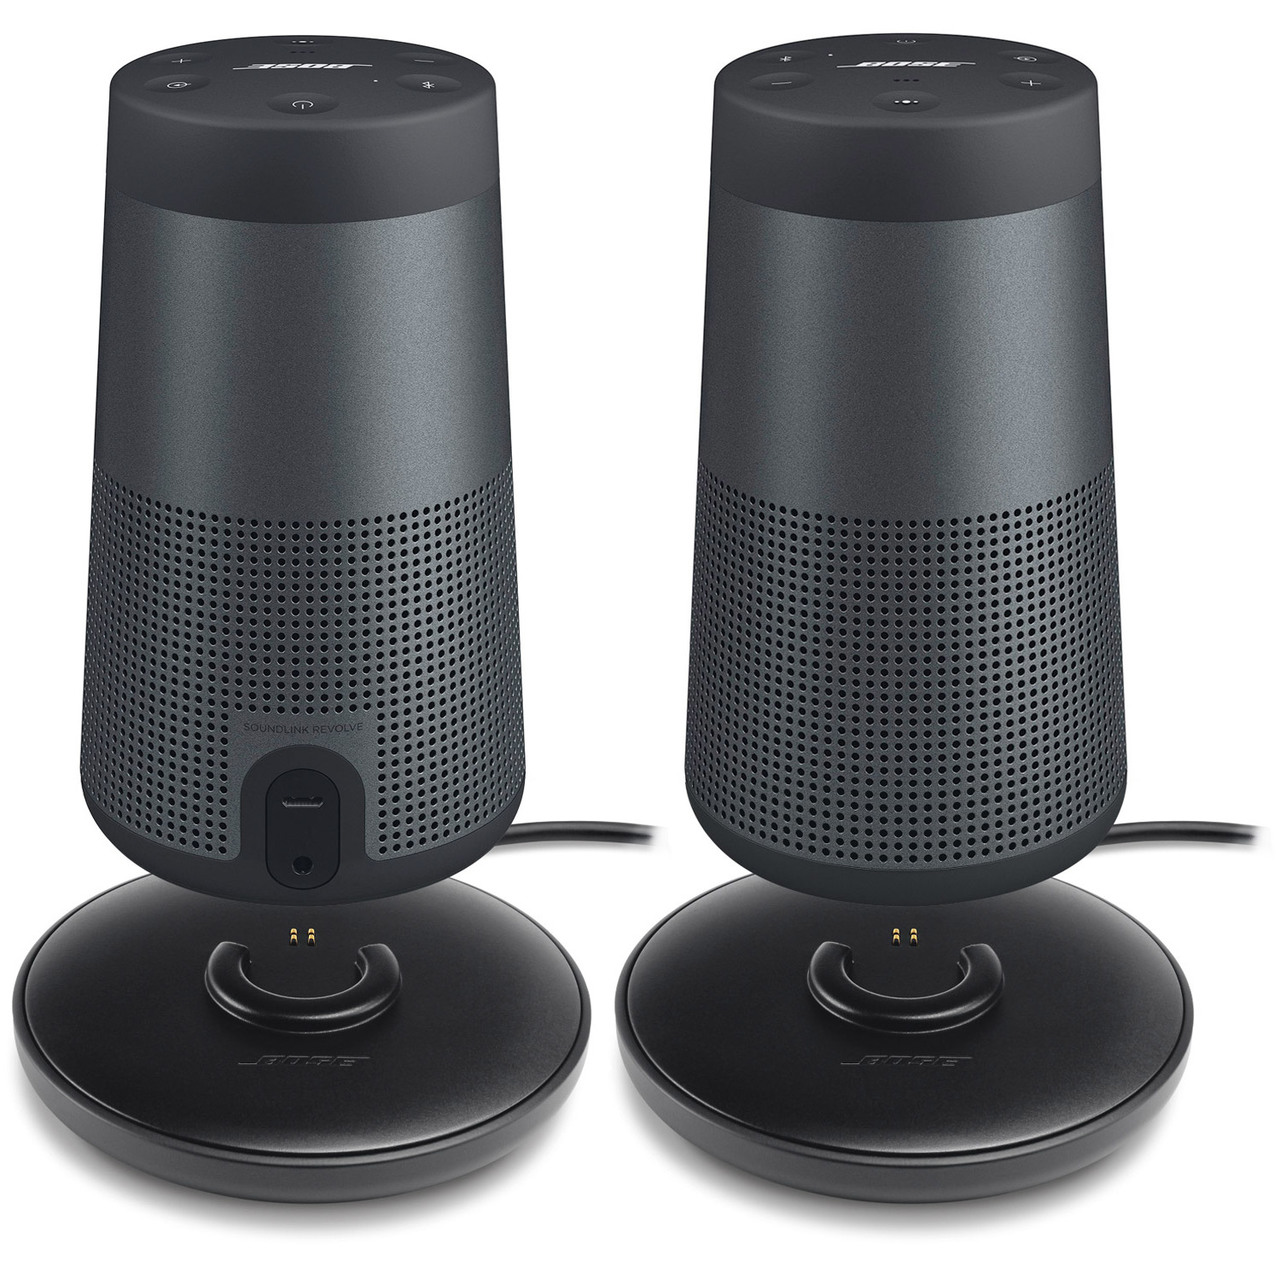 Bose SoundLink Revolve Bluetooth Speaker, Pair and Cradle - Black